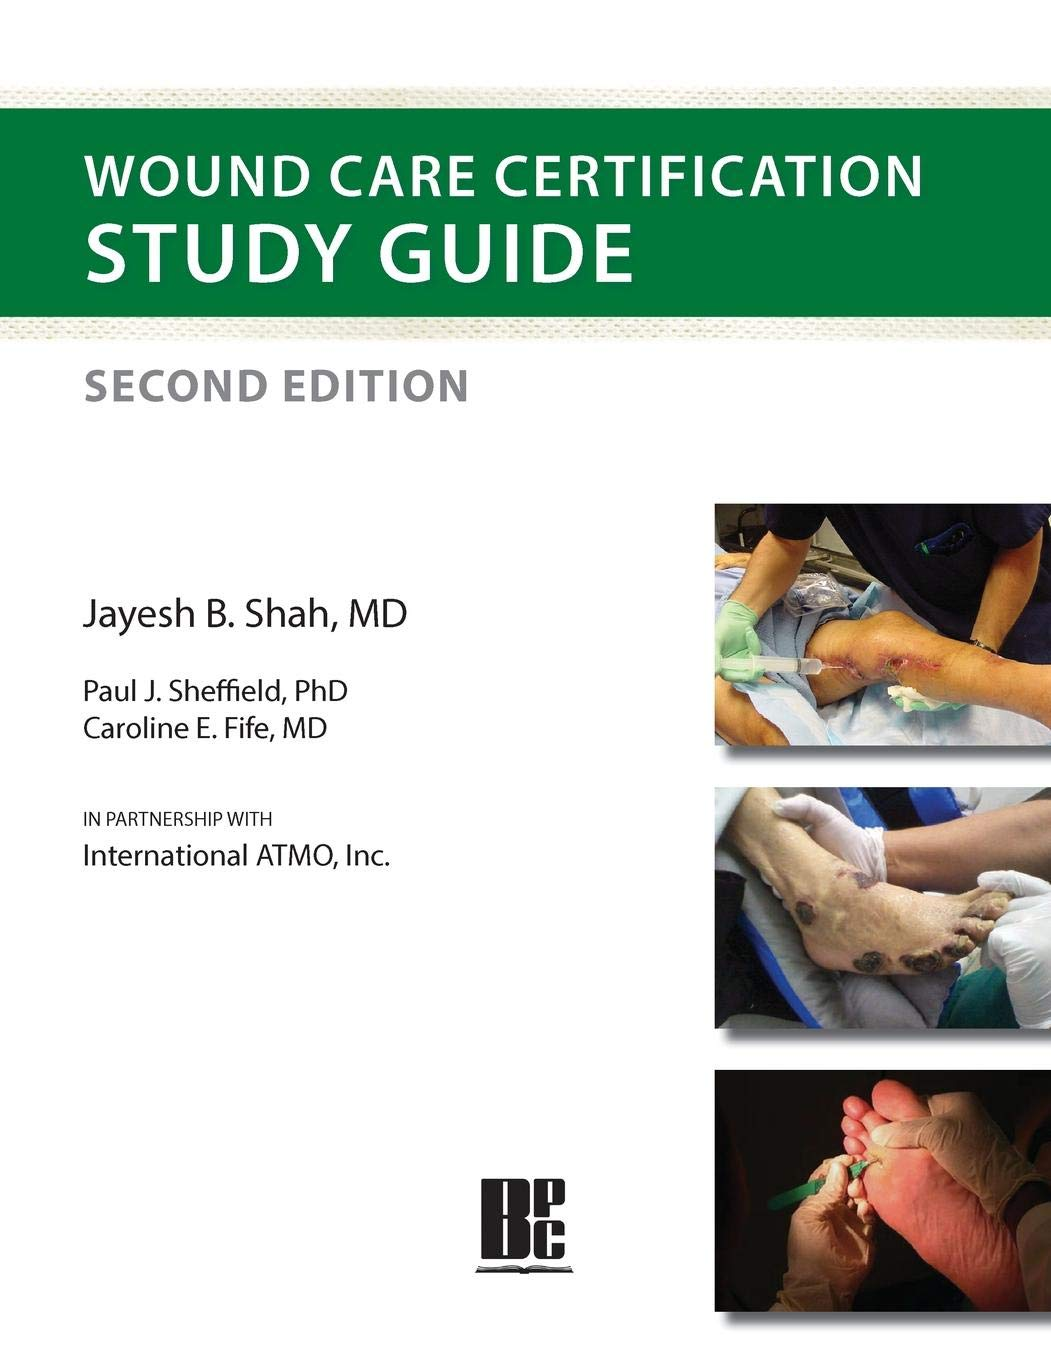 Wound Care Certification Study Guide Second Edition Jayesh B Shah